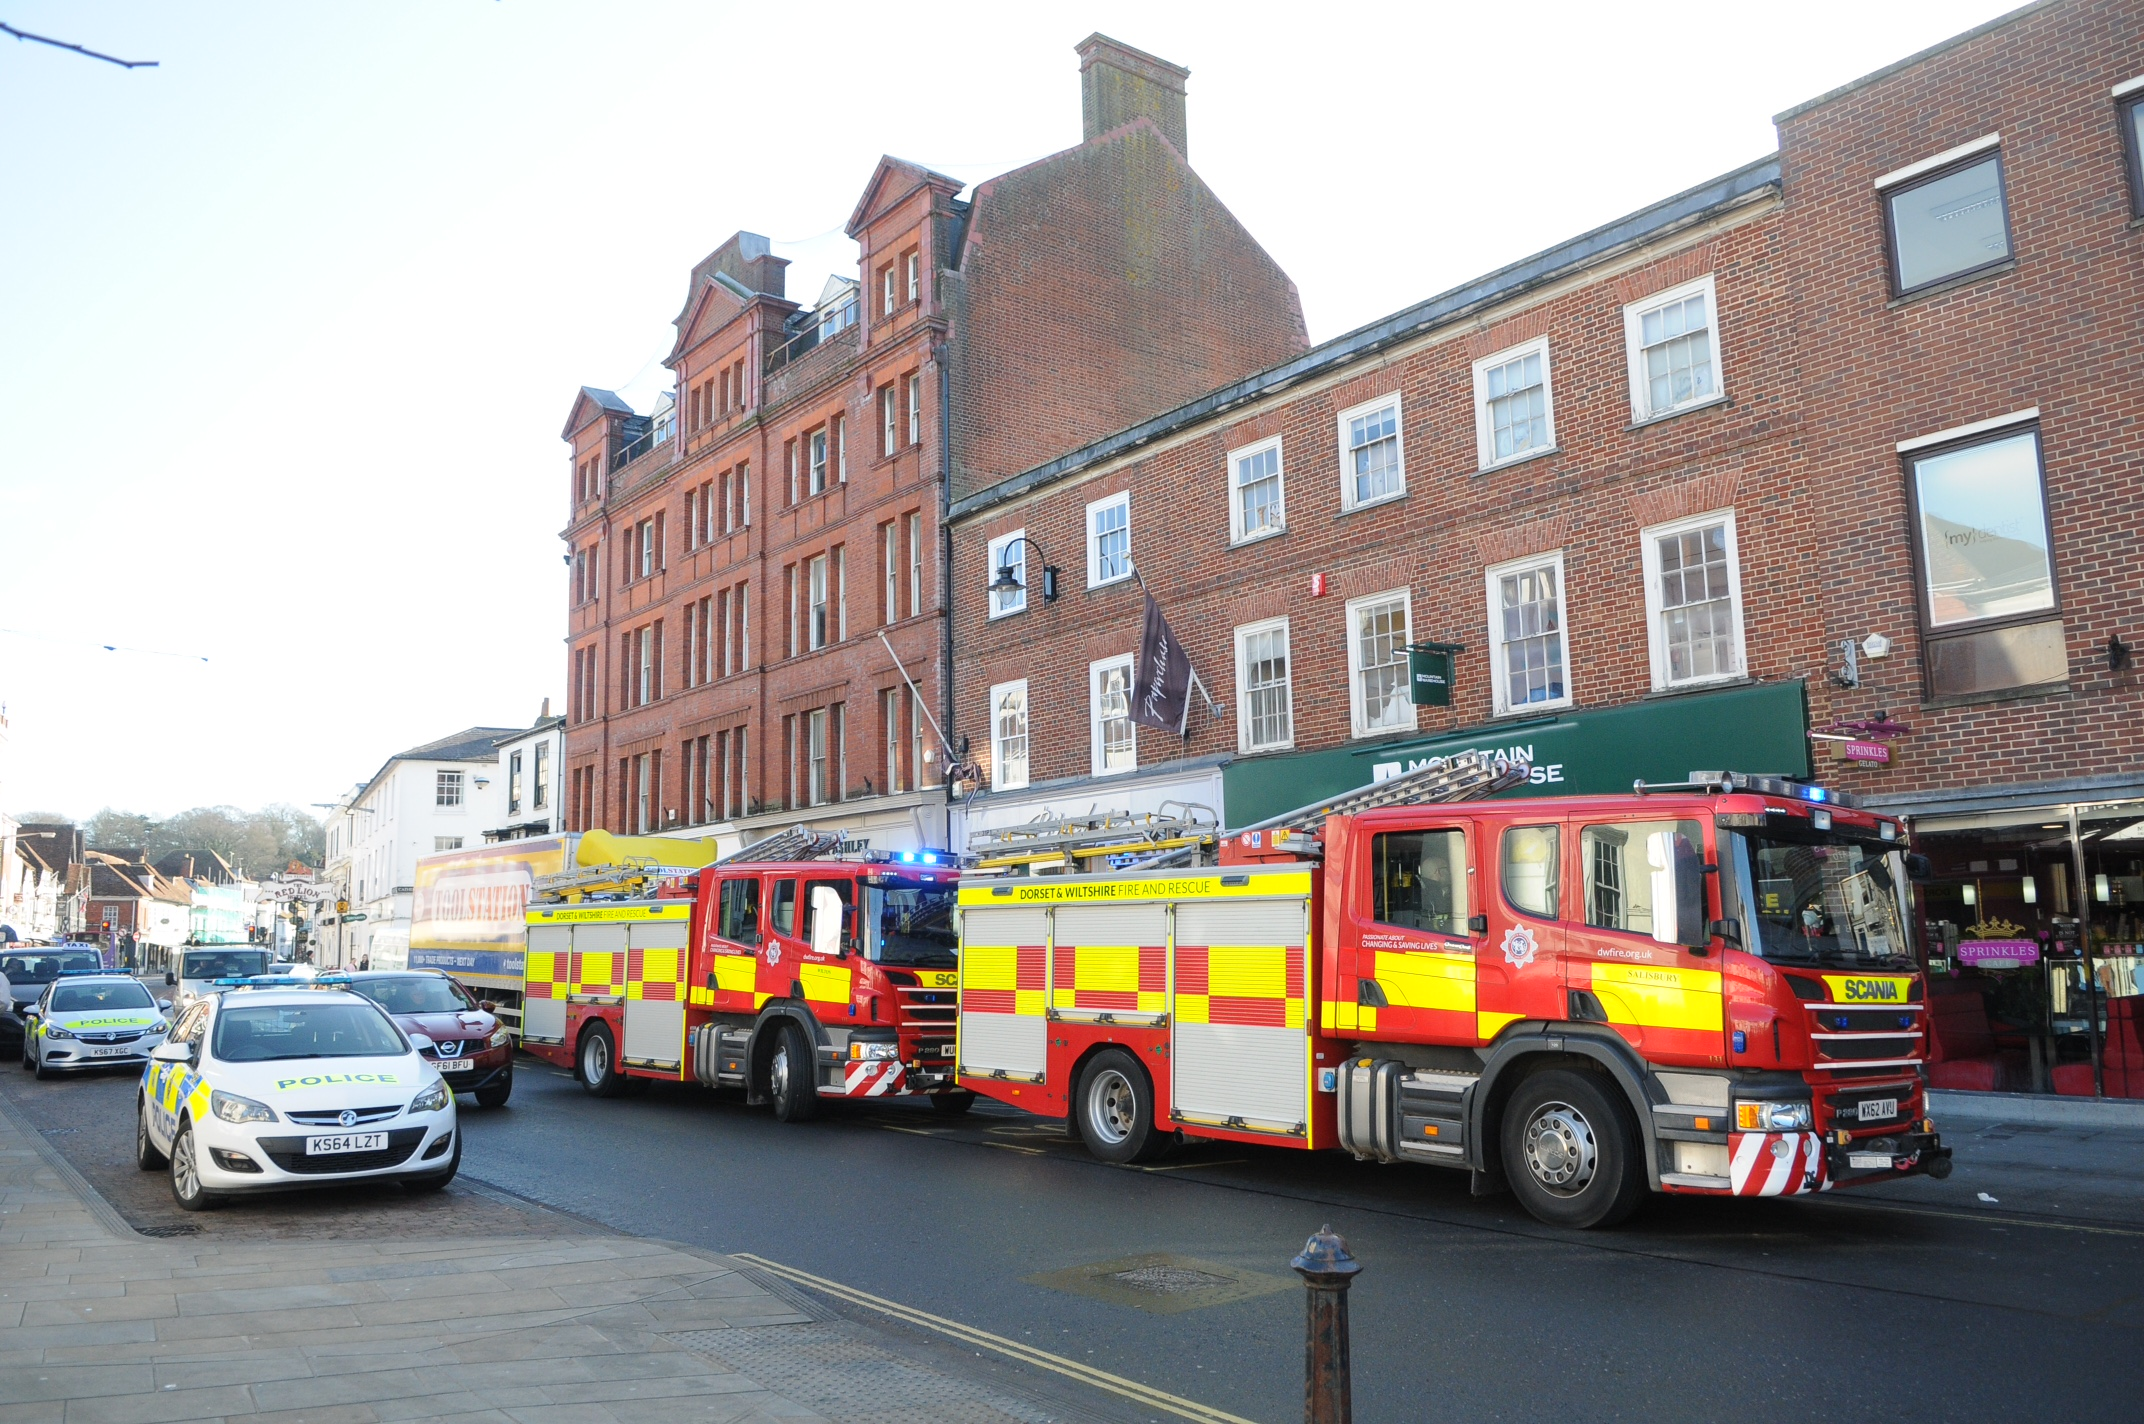 Fire crews called to 'strong smell of gas' in empty city centre shop